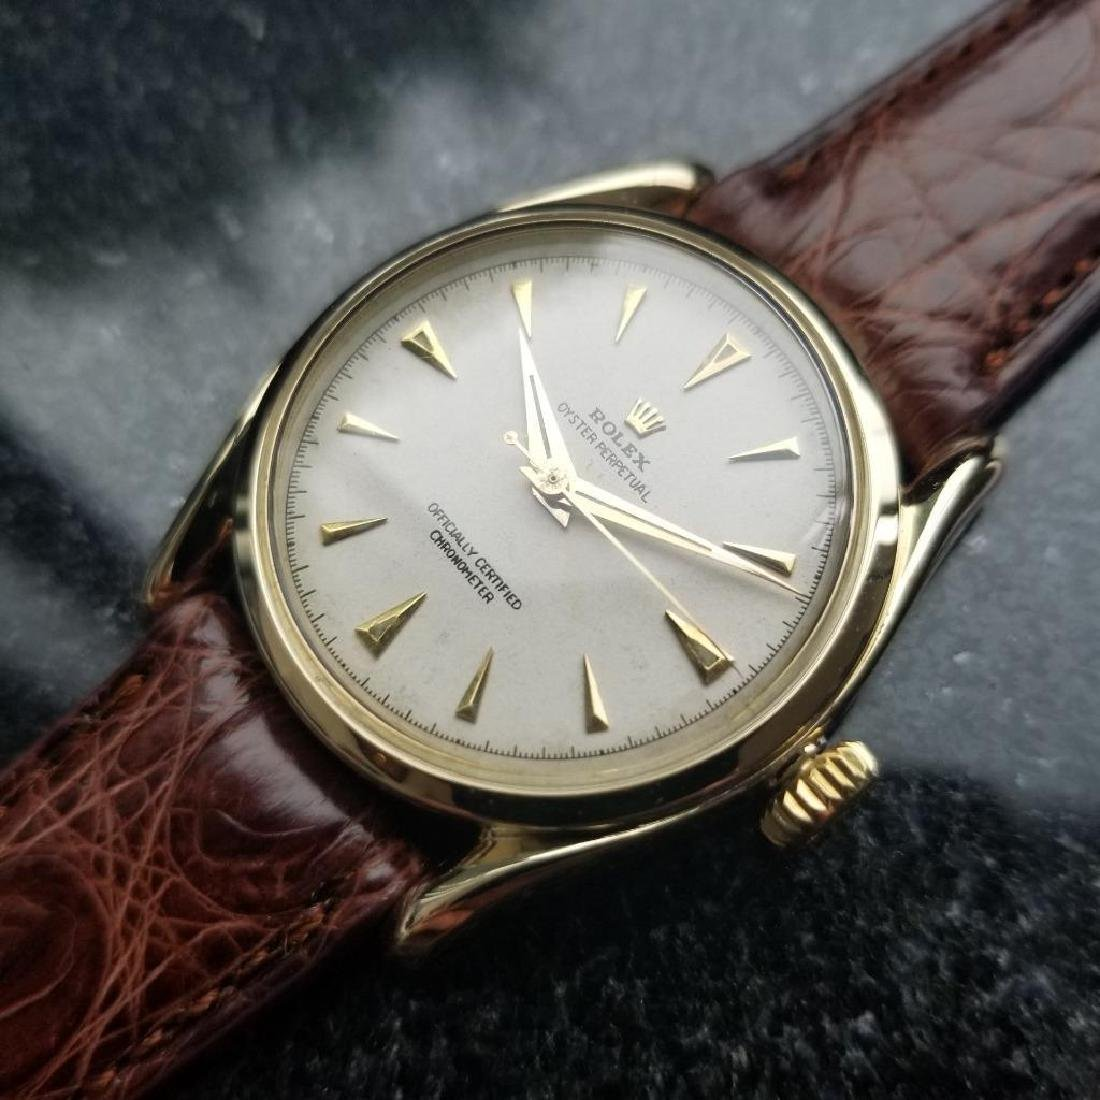 Rolex Oyster Perpetual Vintage 1951 14k Gold 6092 - 2